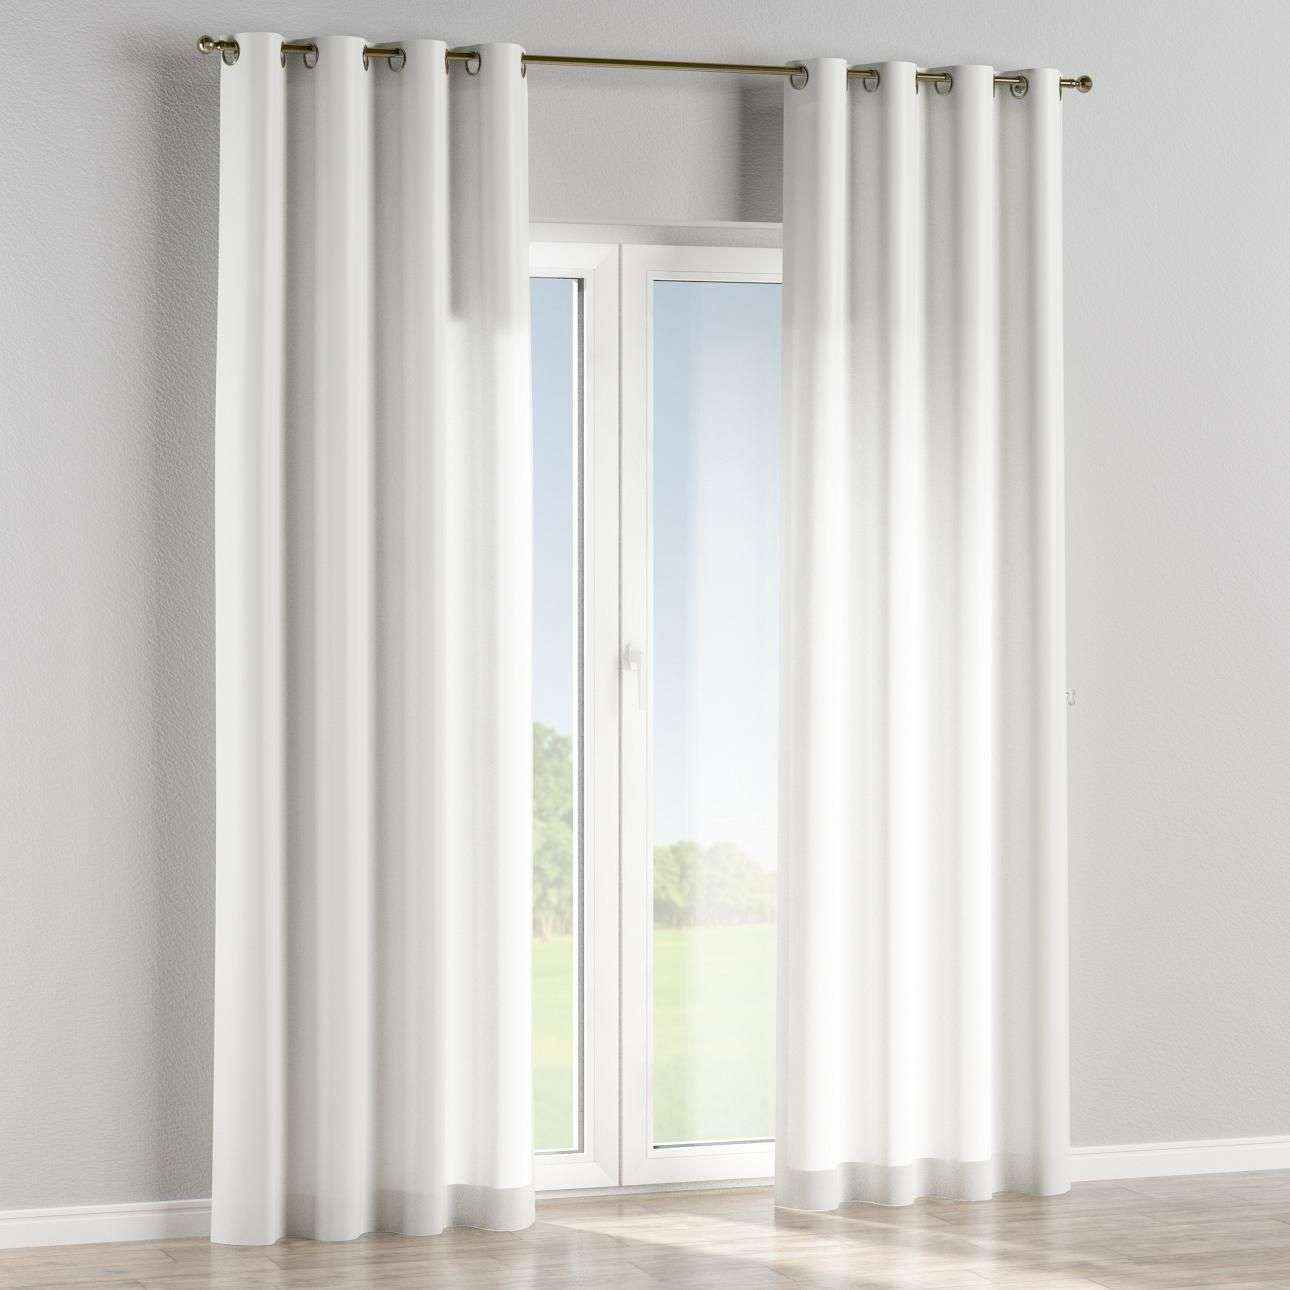 Eyelet curtains in collection Bristol, fabric: 125-09